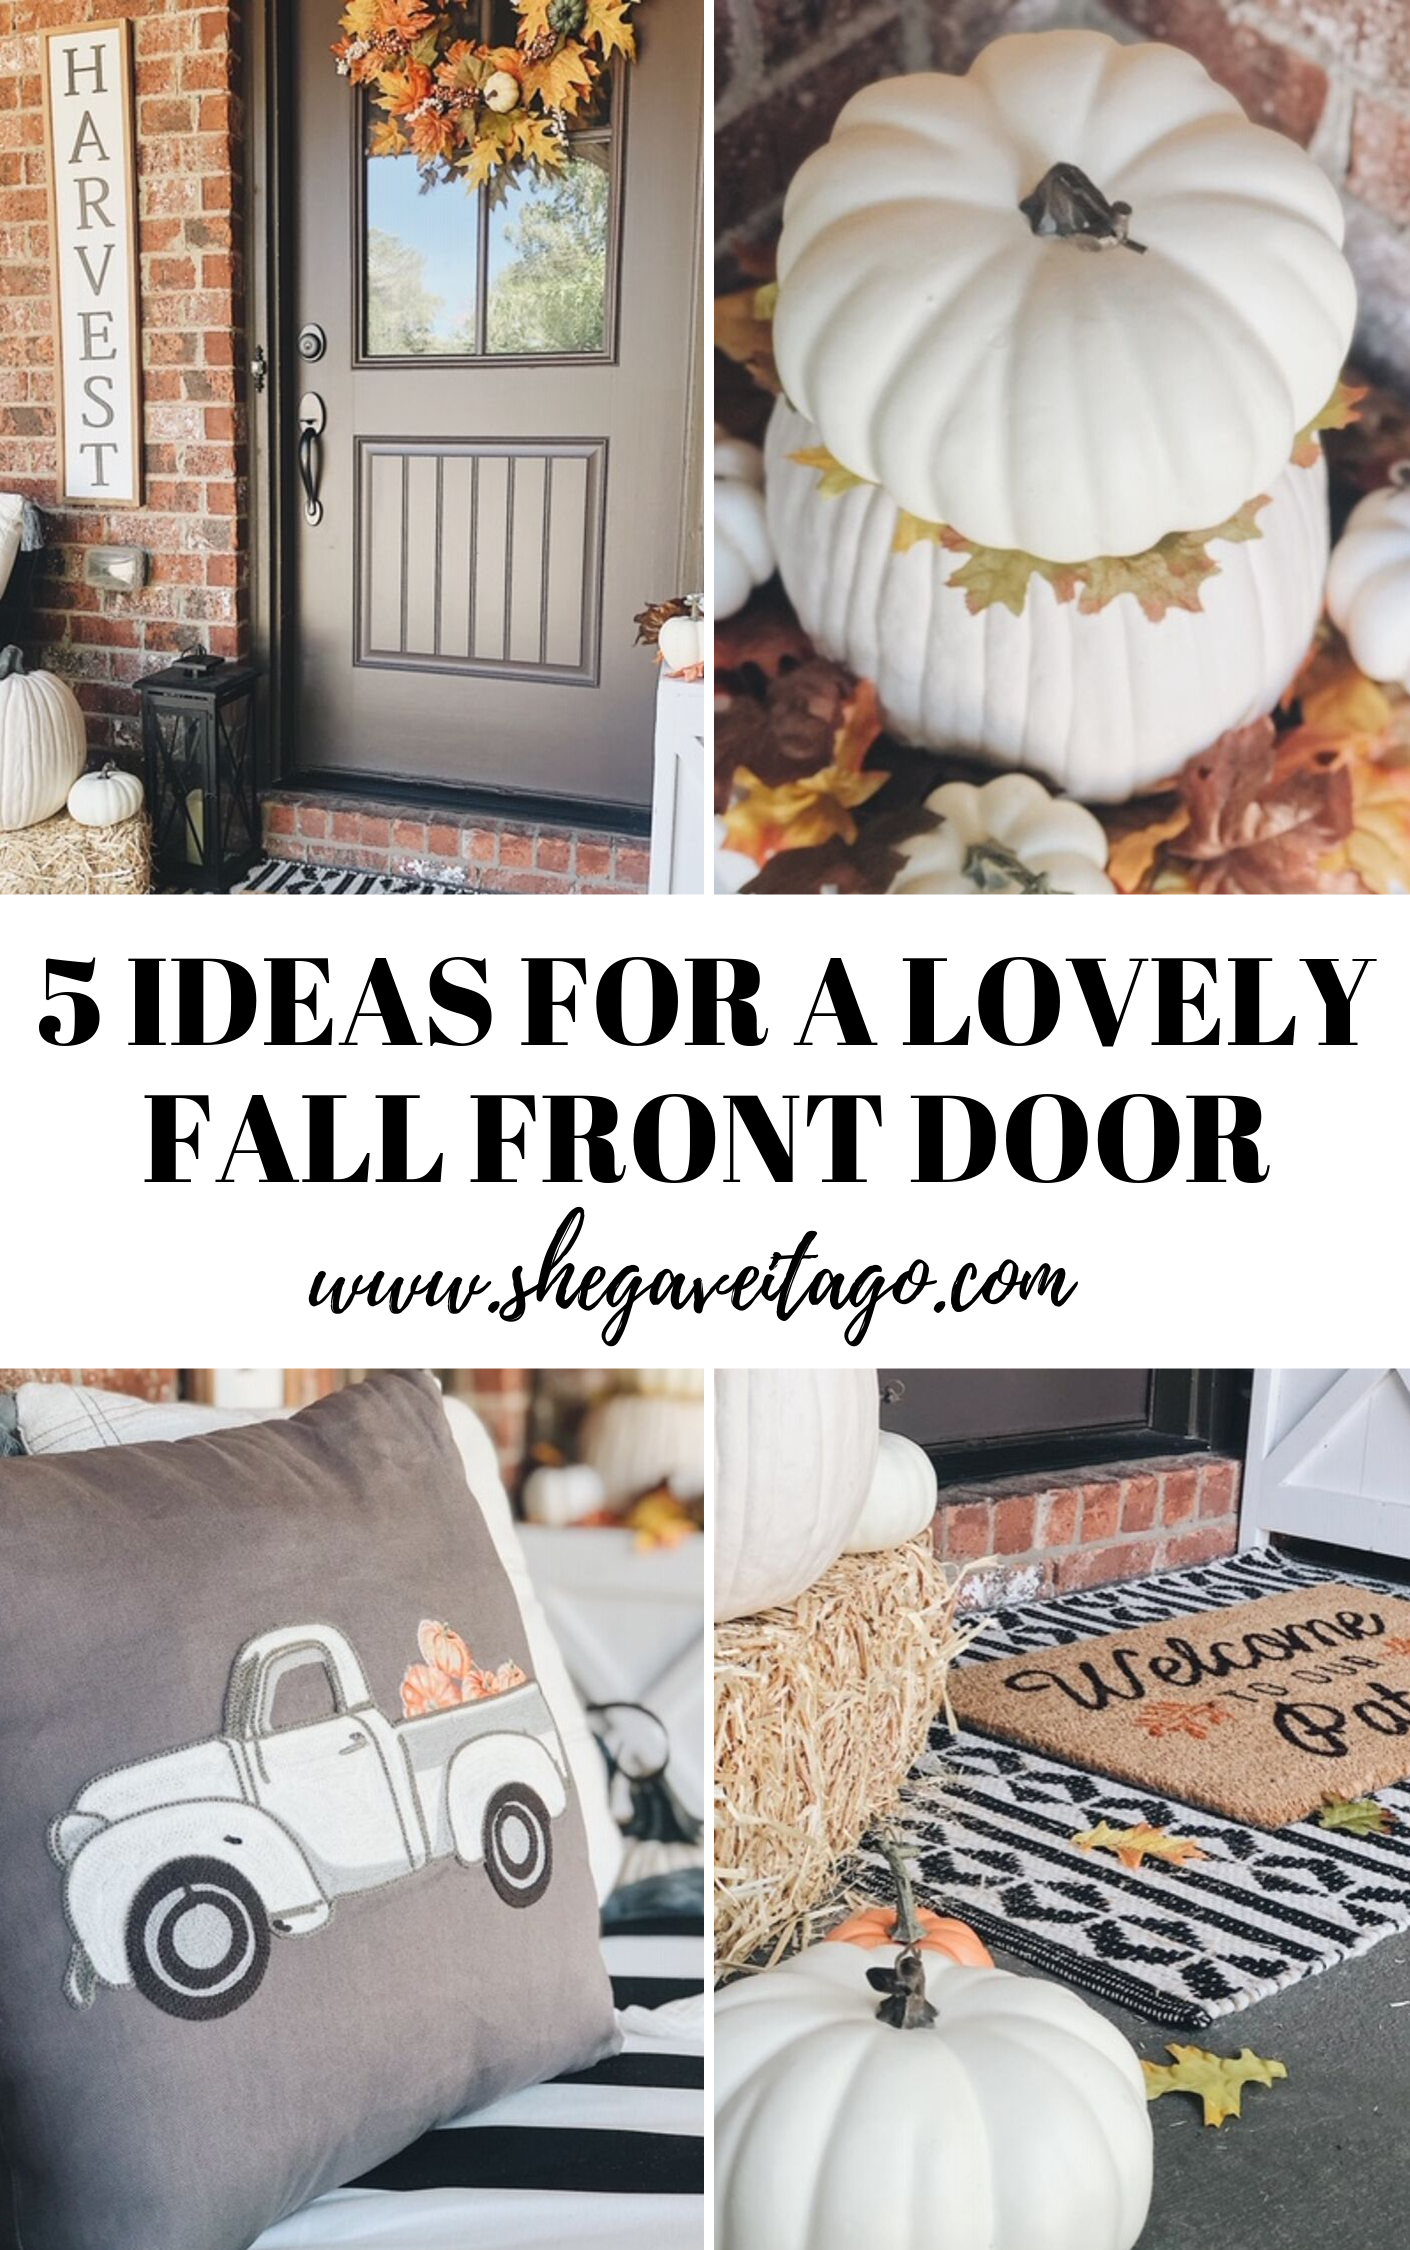 Fall front door ideas | Decorating for fall on your front porch with pumpkins and florals  #fall #falldecor #frontporch #handmadewithjoann #frontdoor#homesweethome